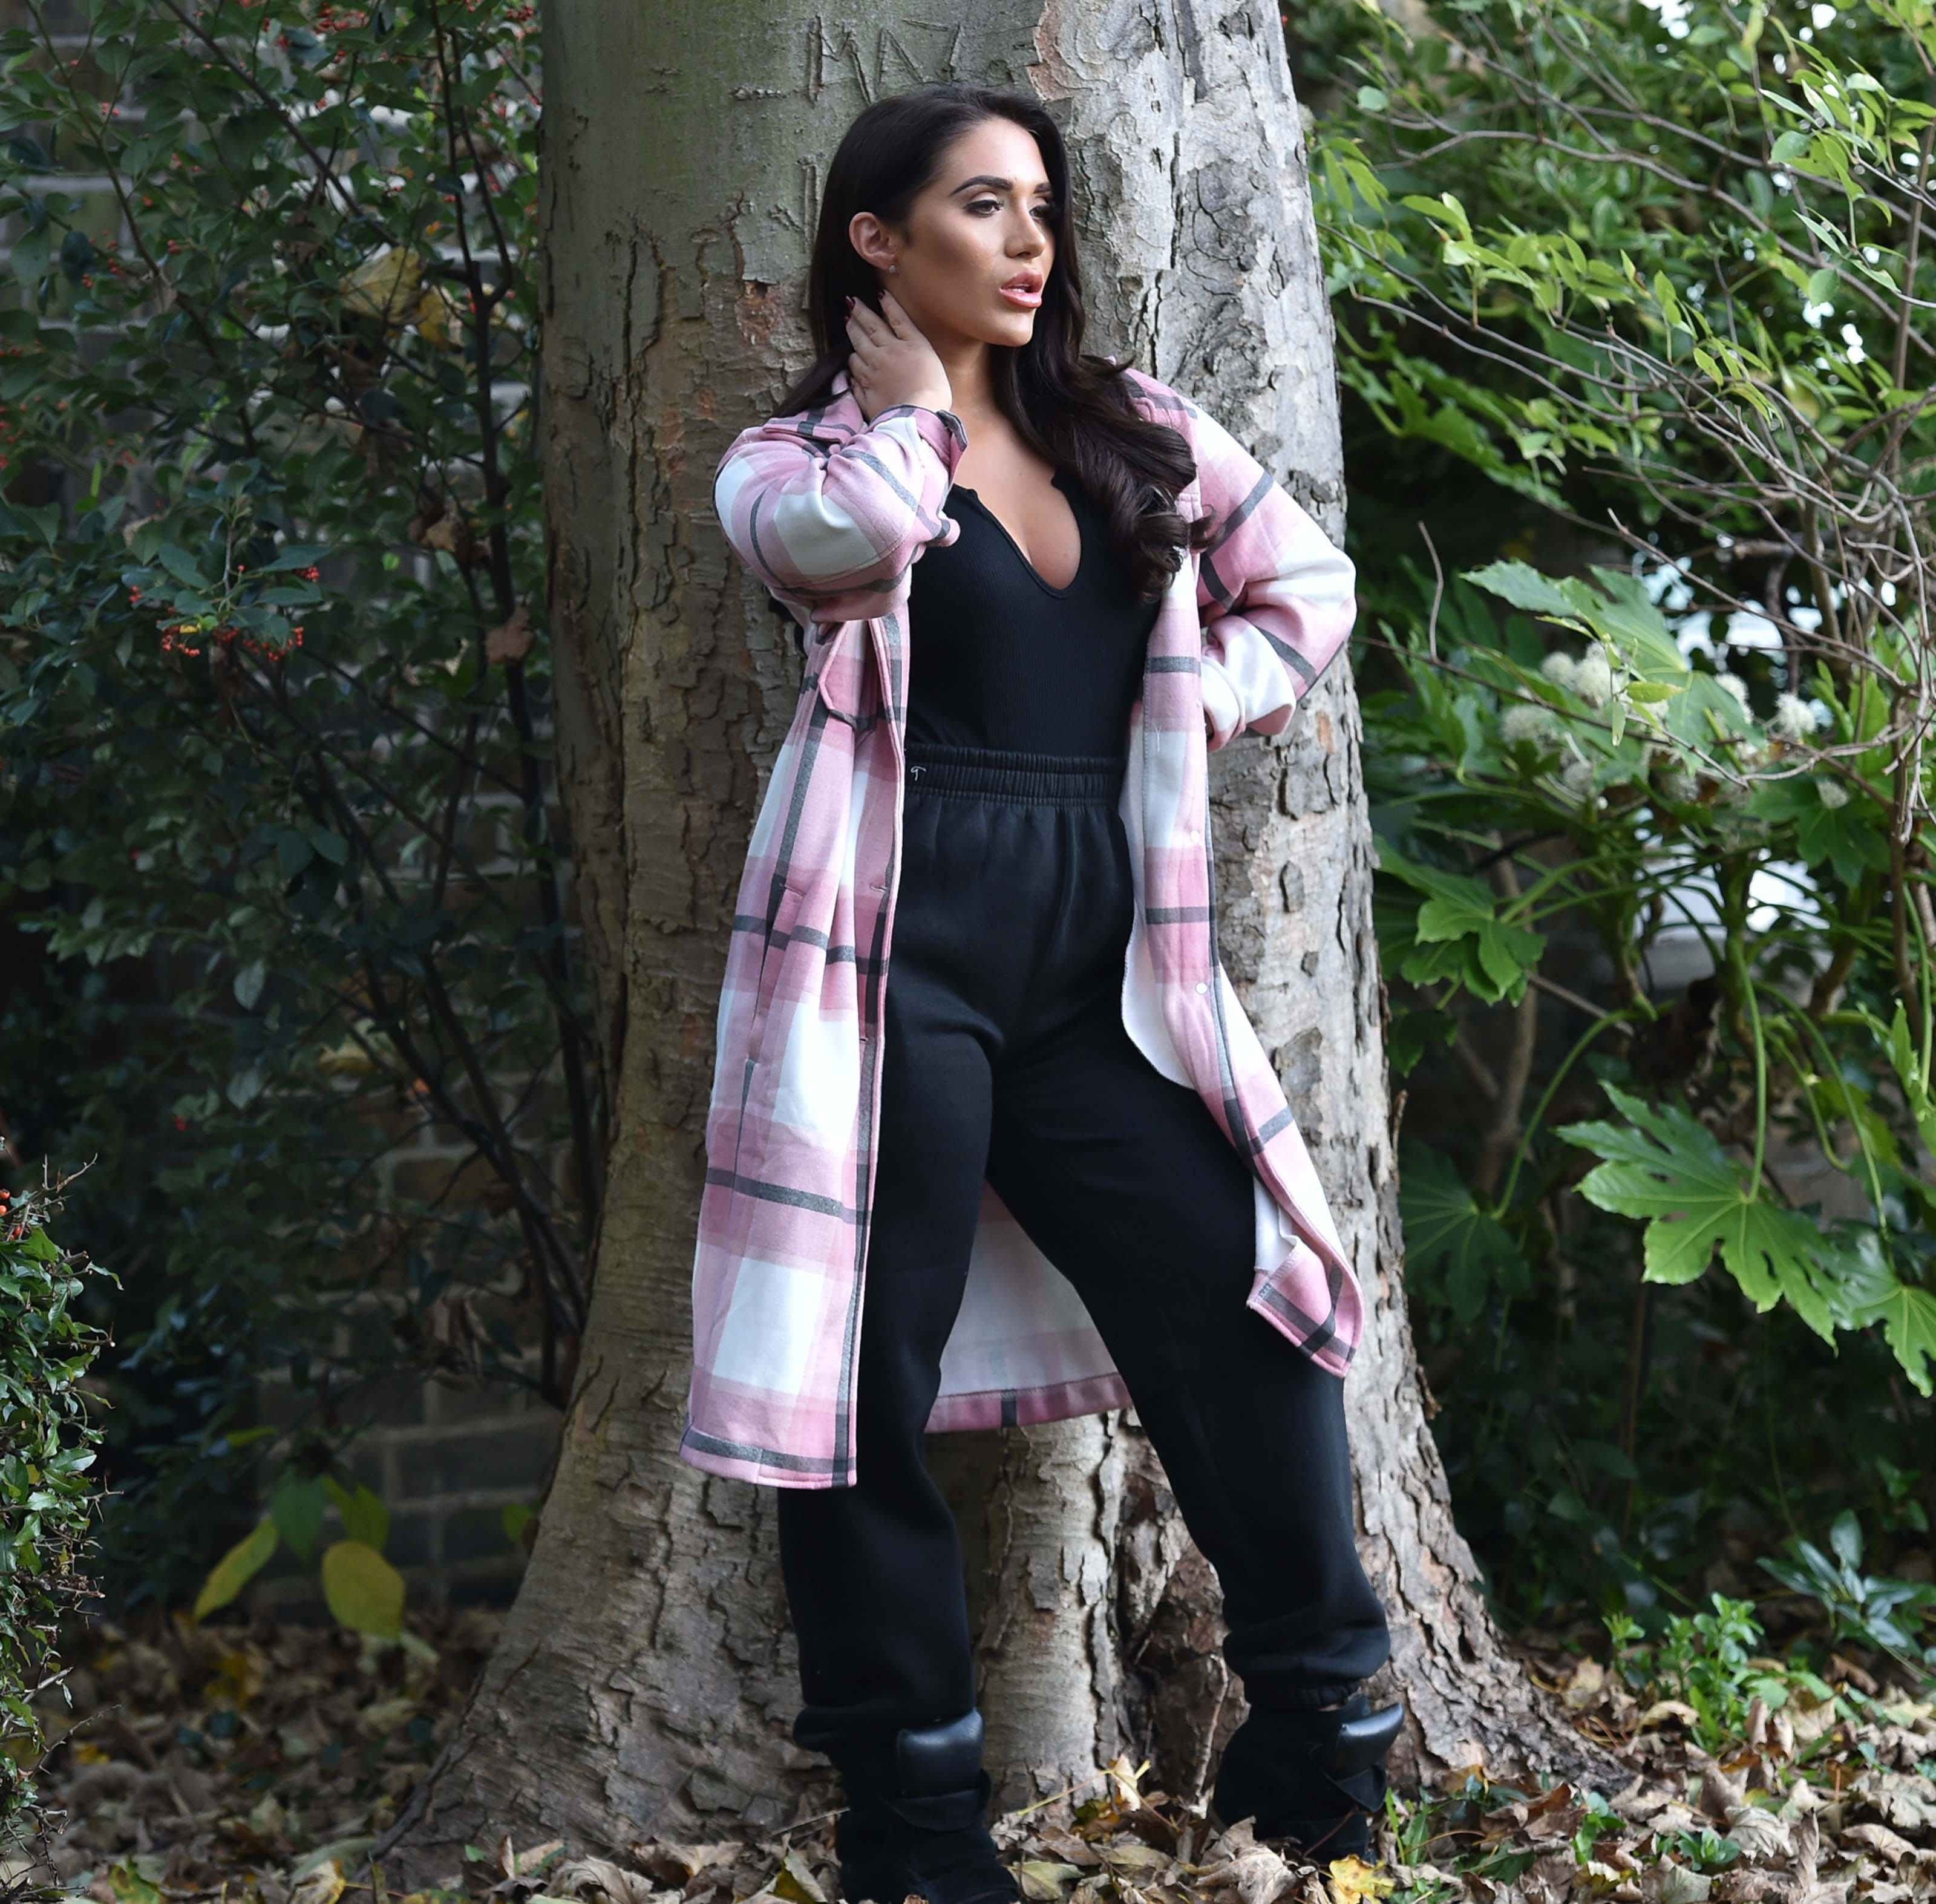 Chloe Brockett doing a photoshoot for the hella shop clothing brand in Brentwood, Essex